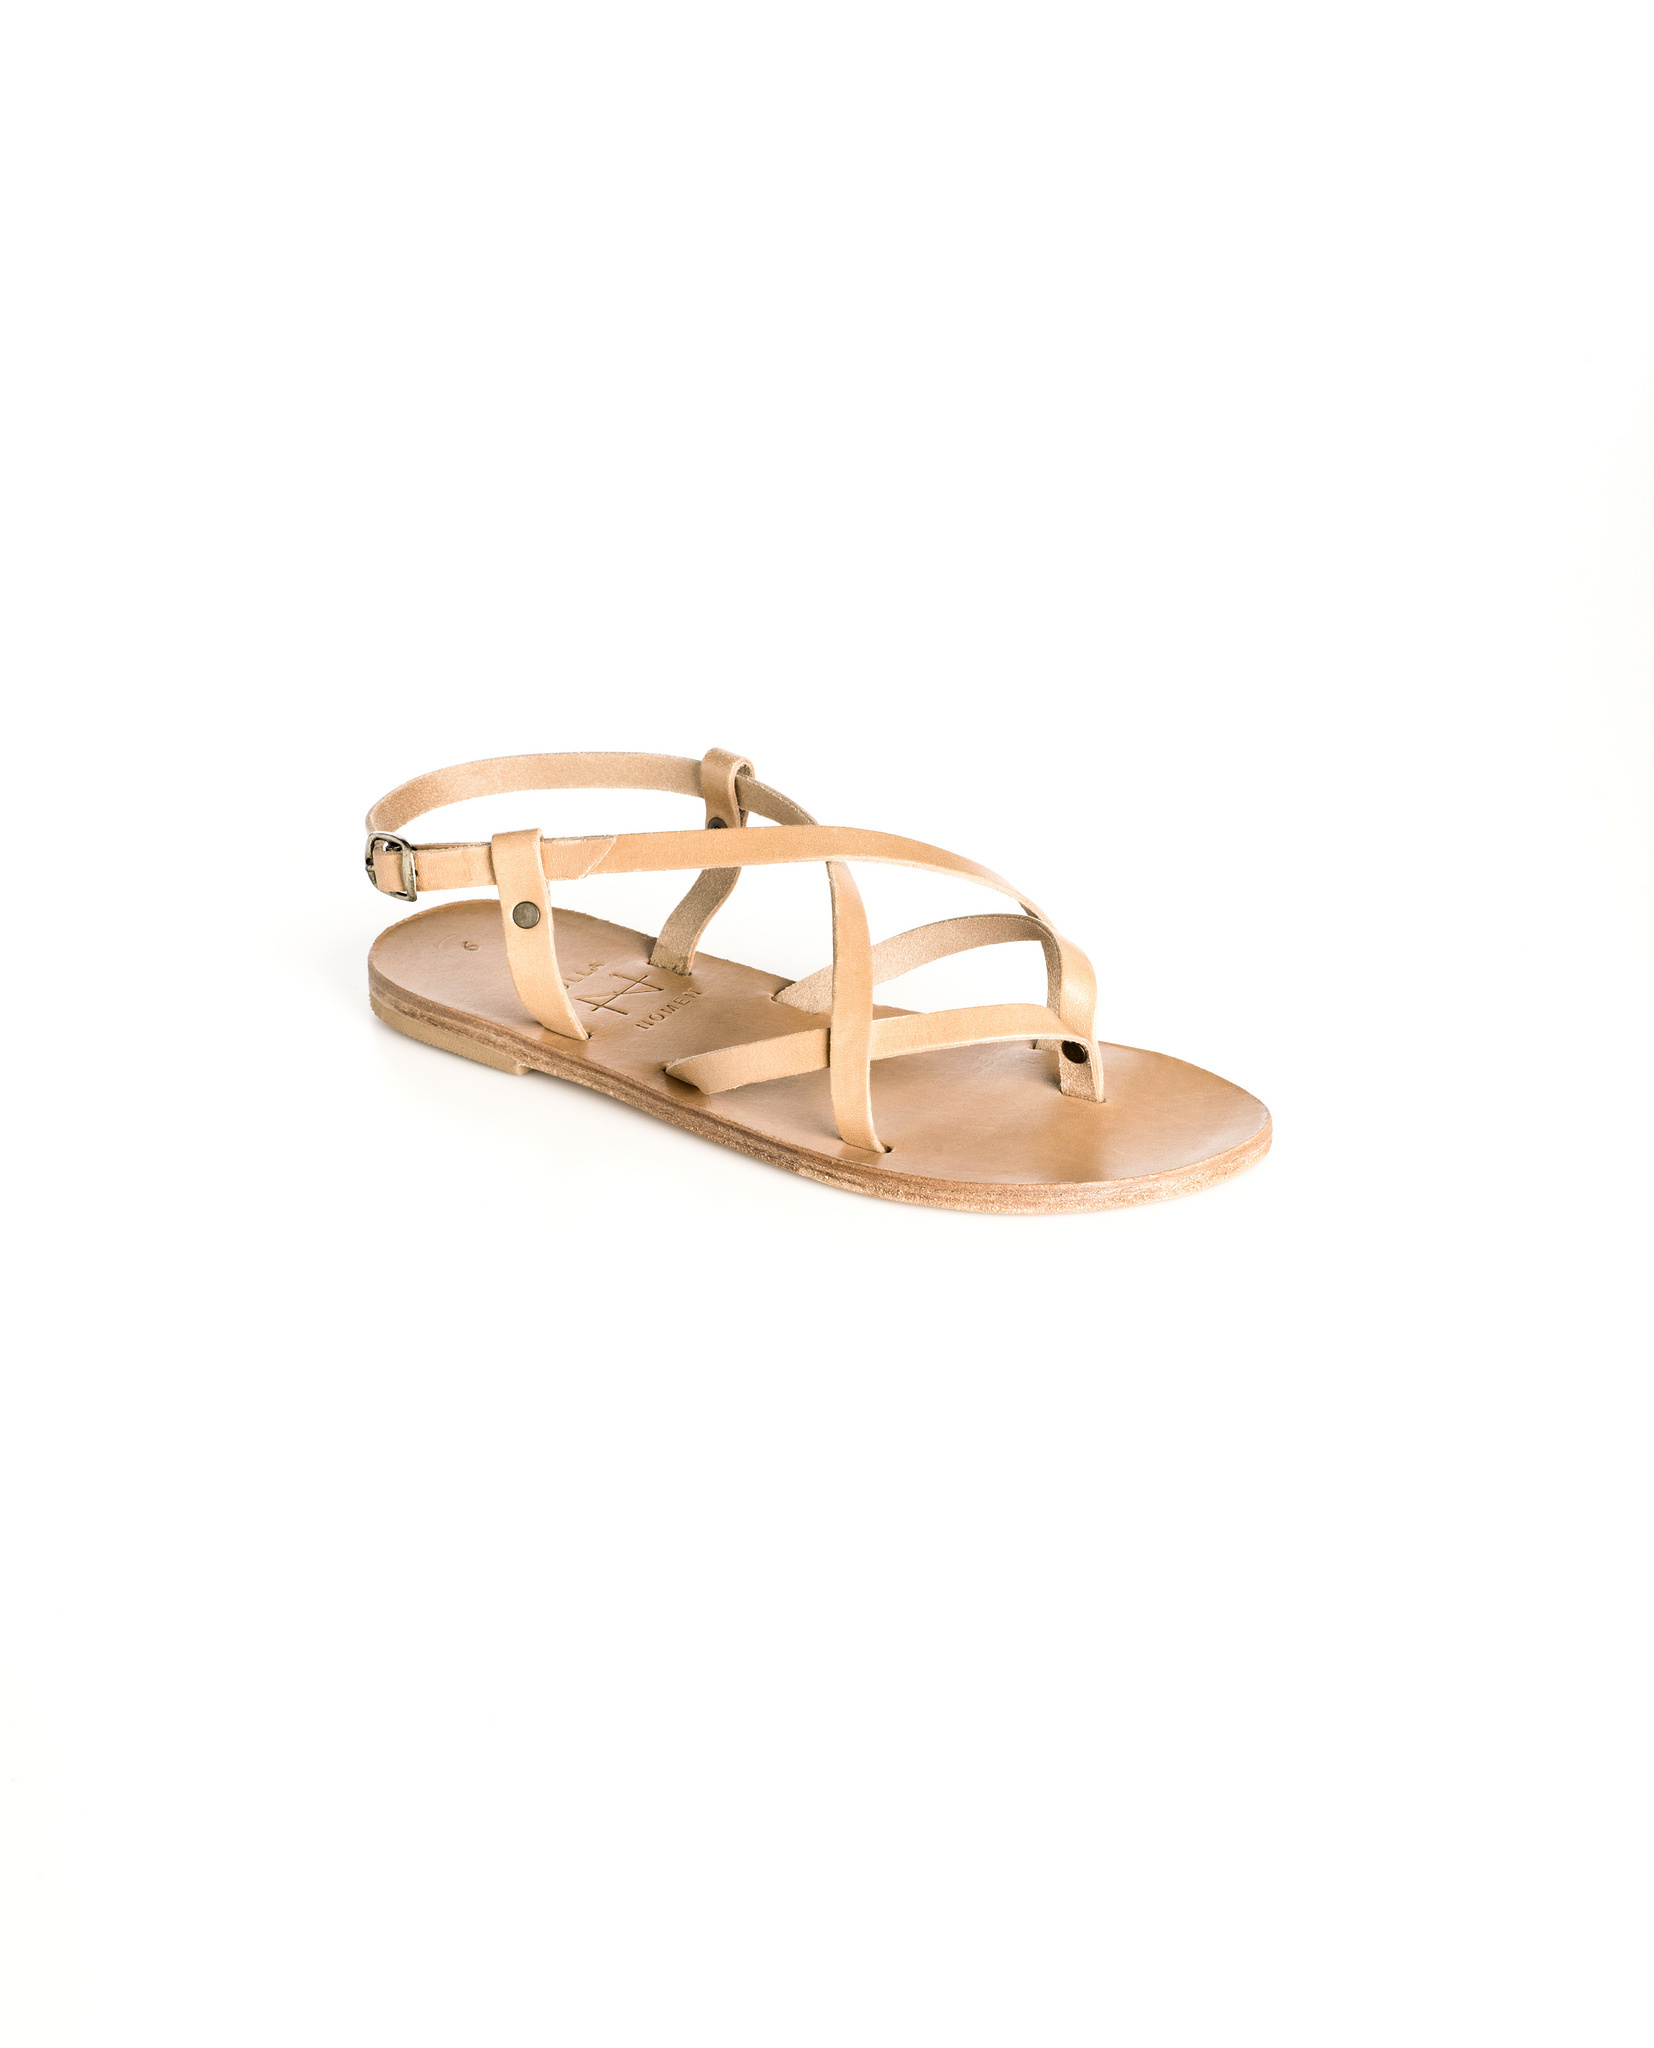 Nulla Nomen | Sandal Toe Cross Strap Small Natural Vegetable Tanned Leather